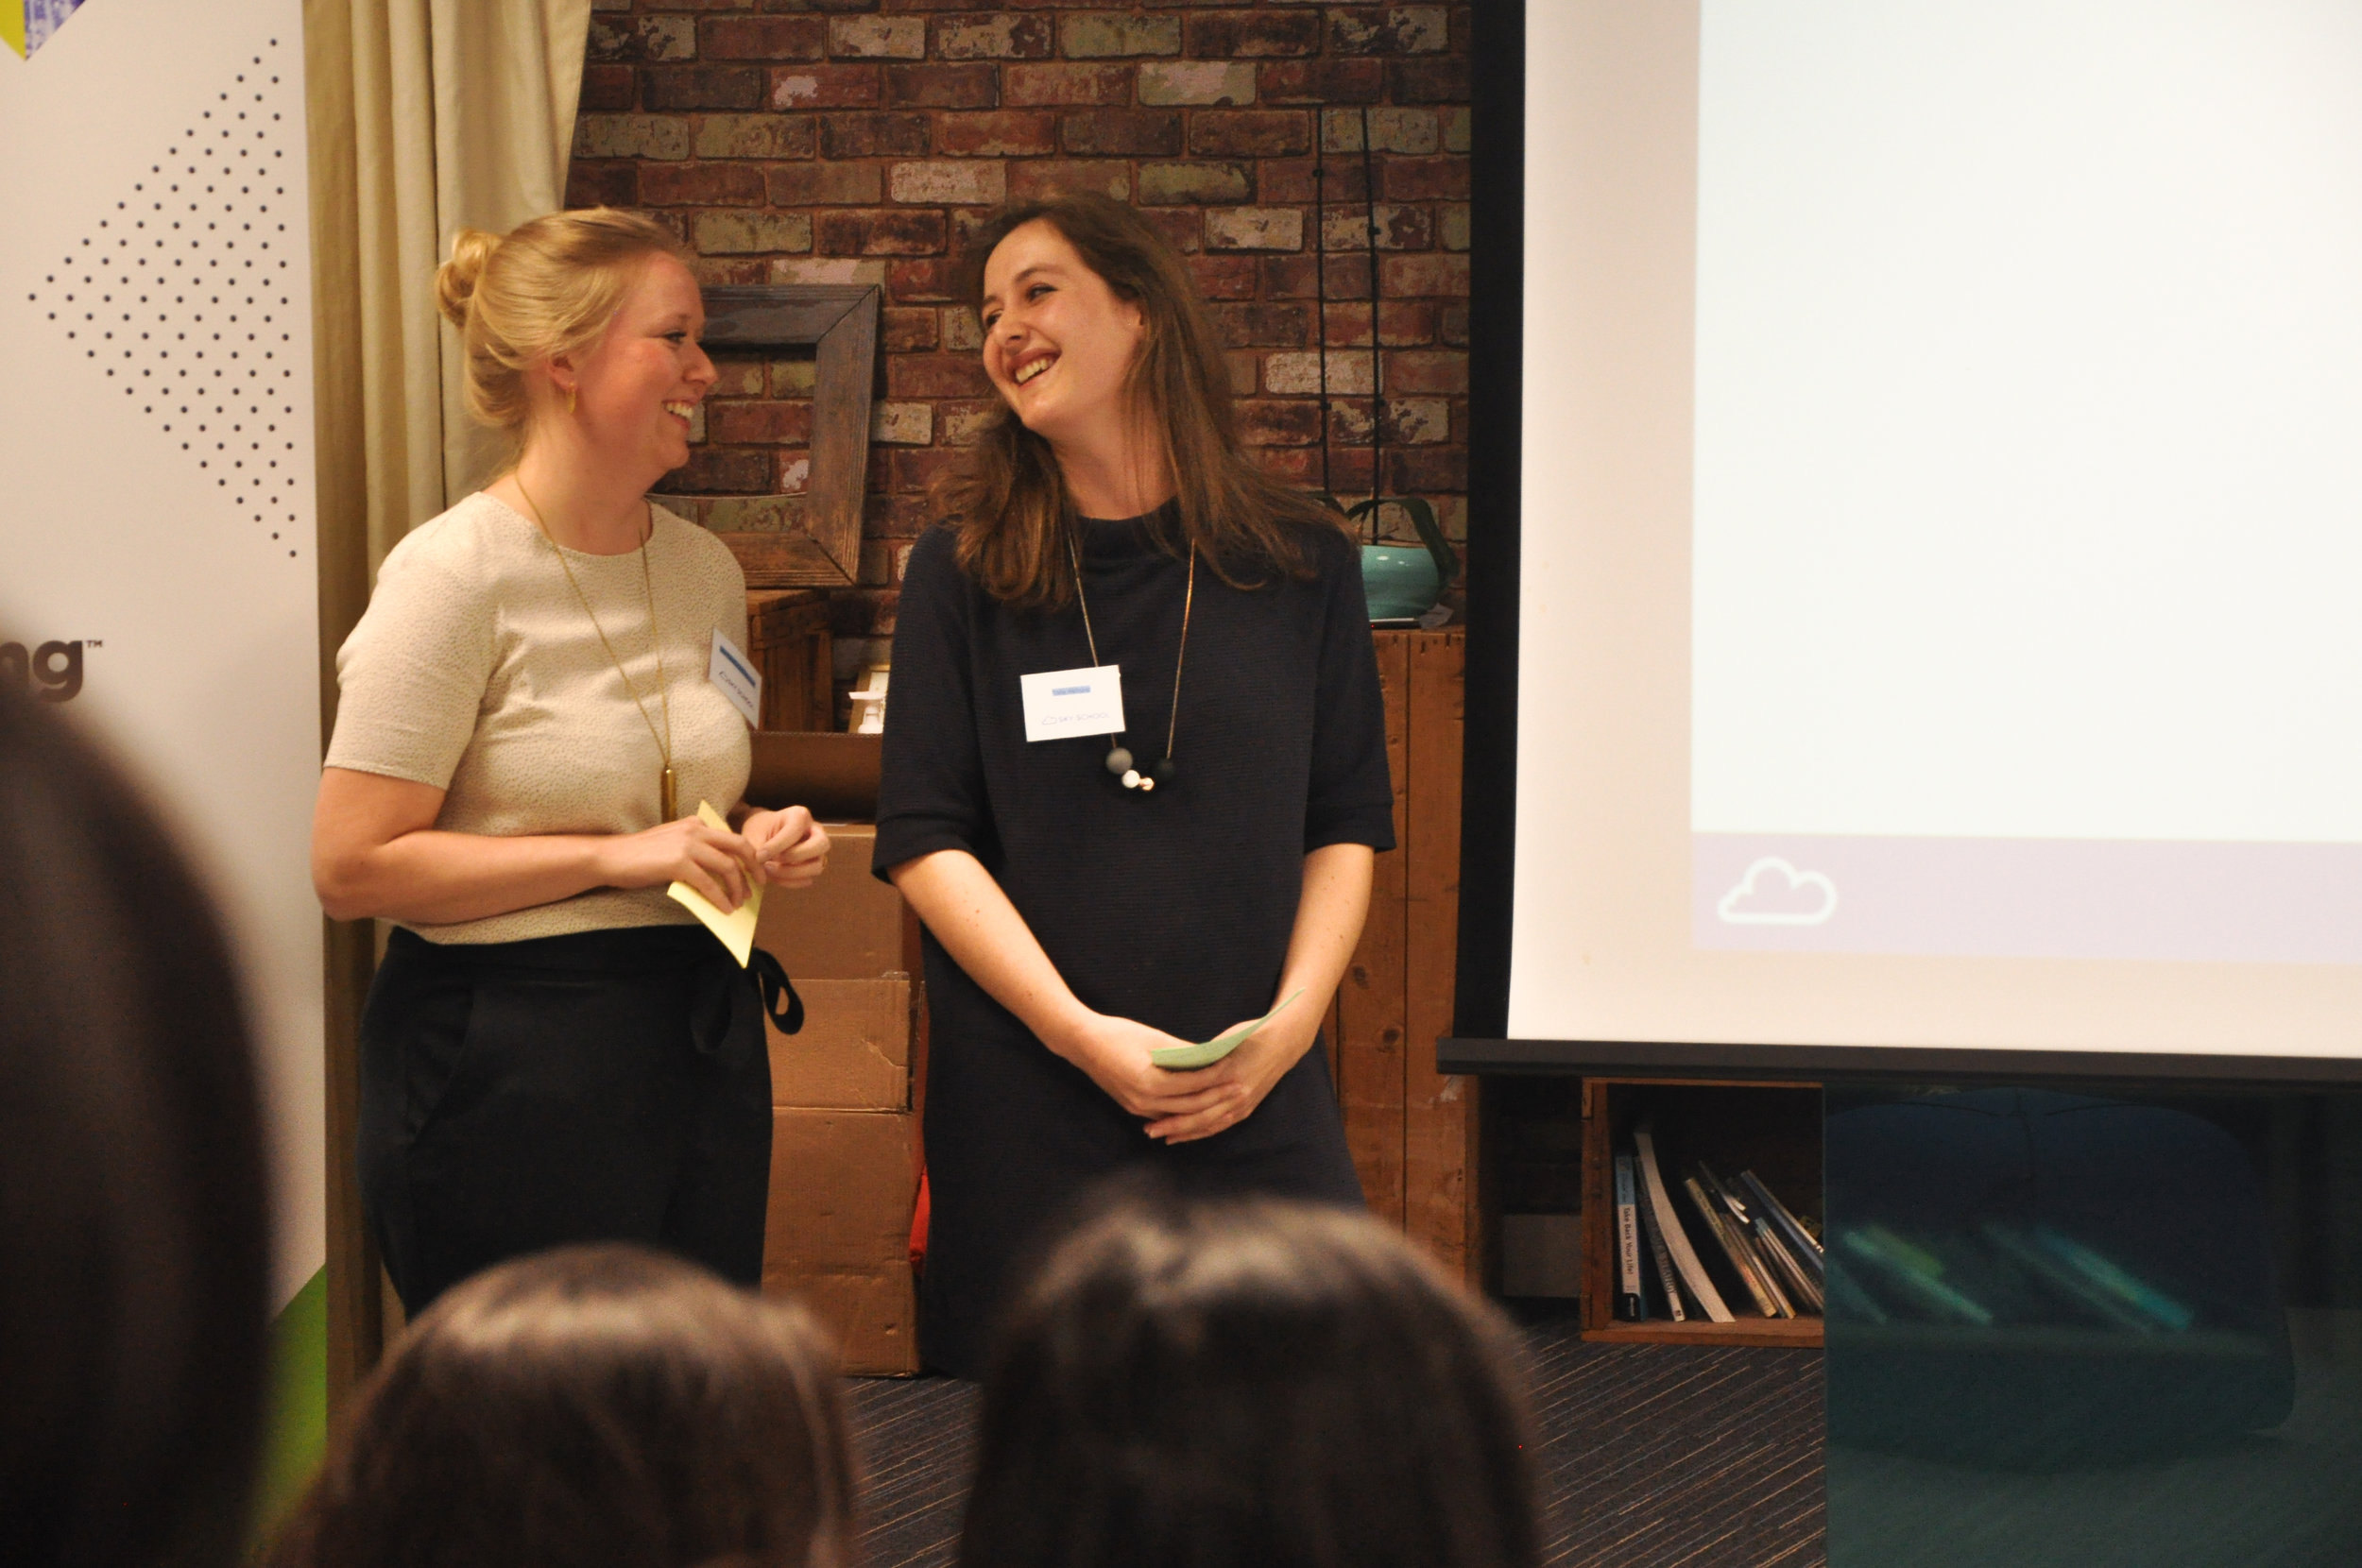 Co-founders and Co-Executive directors  Mia Eskelund Pedersen  and  Polly Akhurst .